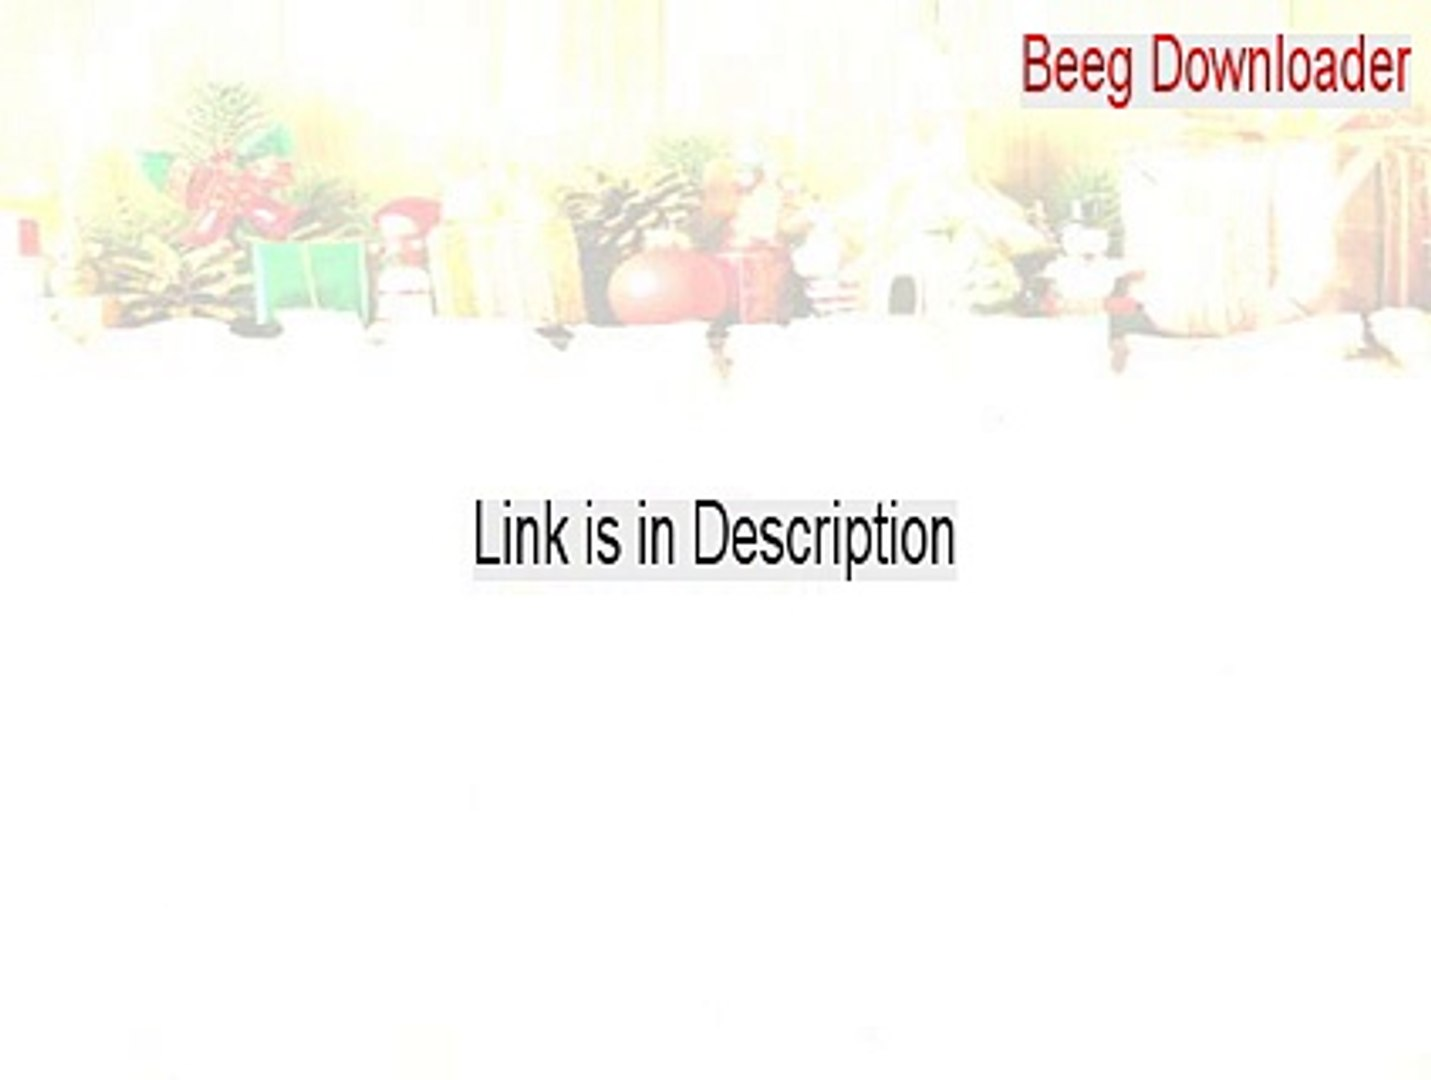 Beeg Downloader Full Download - Free Download [2015]